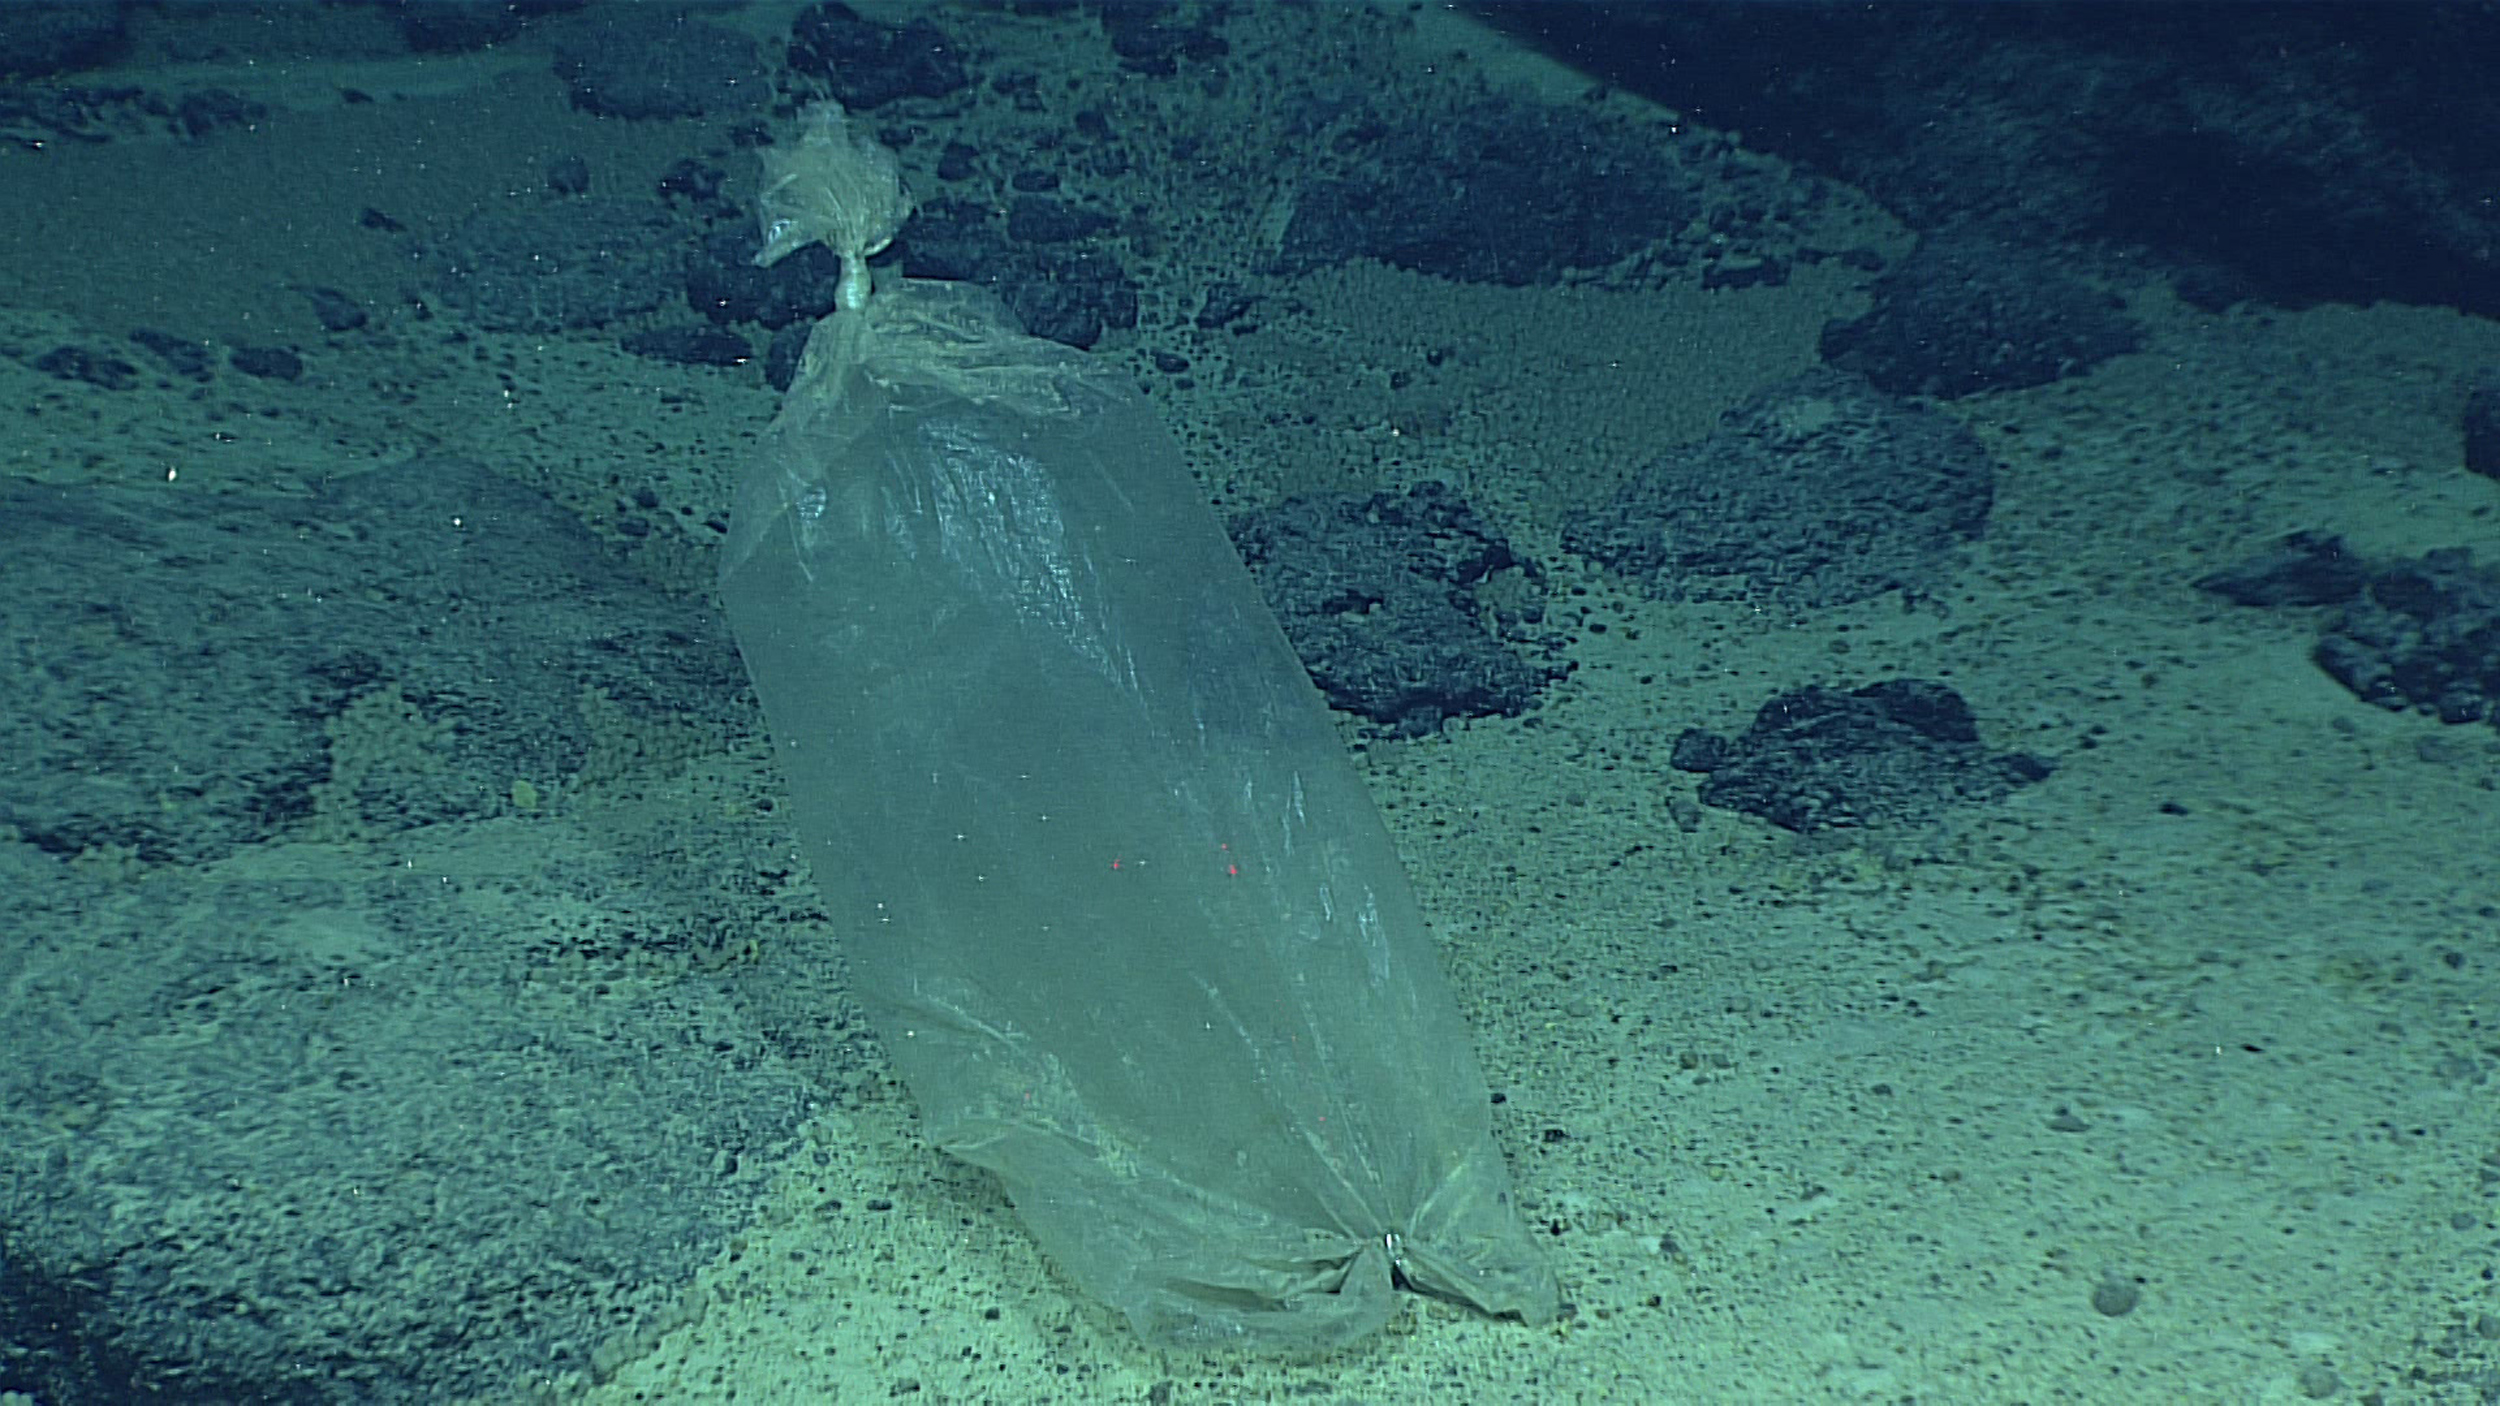 Plastic bag found near the bottom of the Marianas Trench